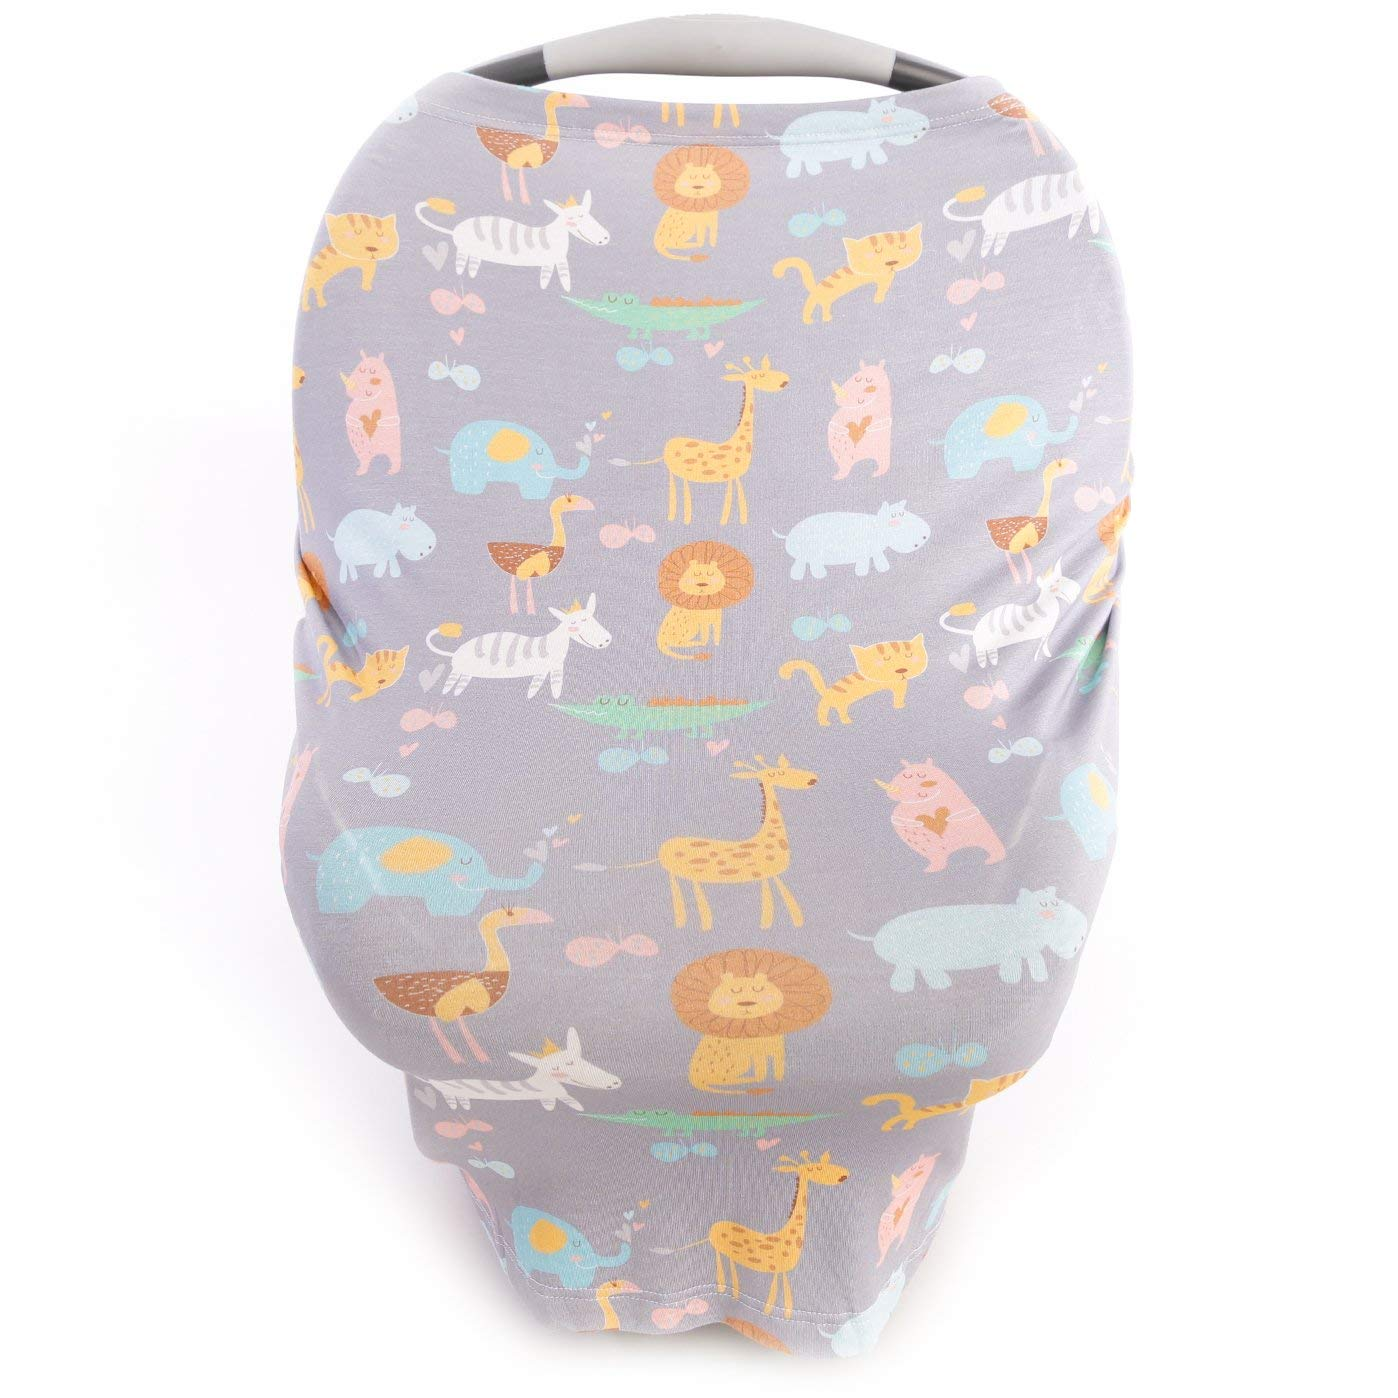 Kids N' Such Baby Car Seat Cover Car Seat Canopy & Nursing Cover, Jungle